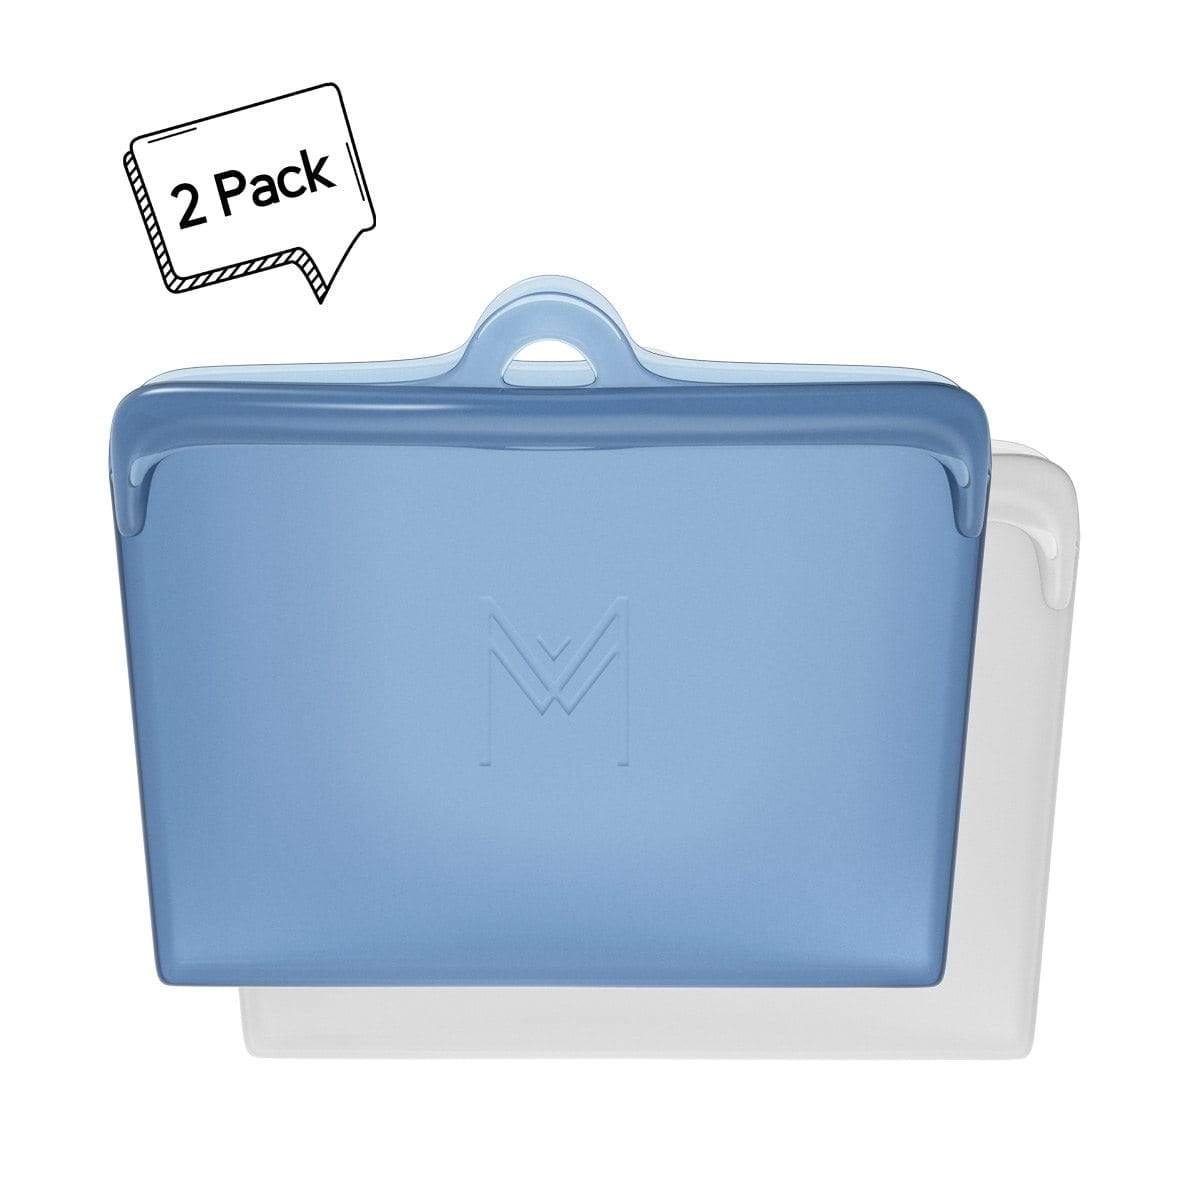 Montiico Reusable Silicone Food Pouch Slate